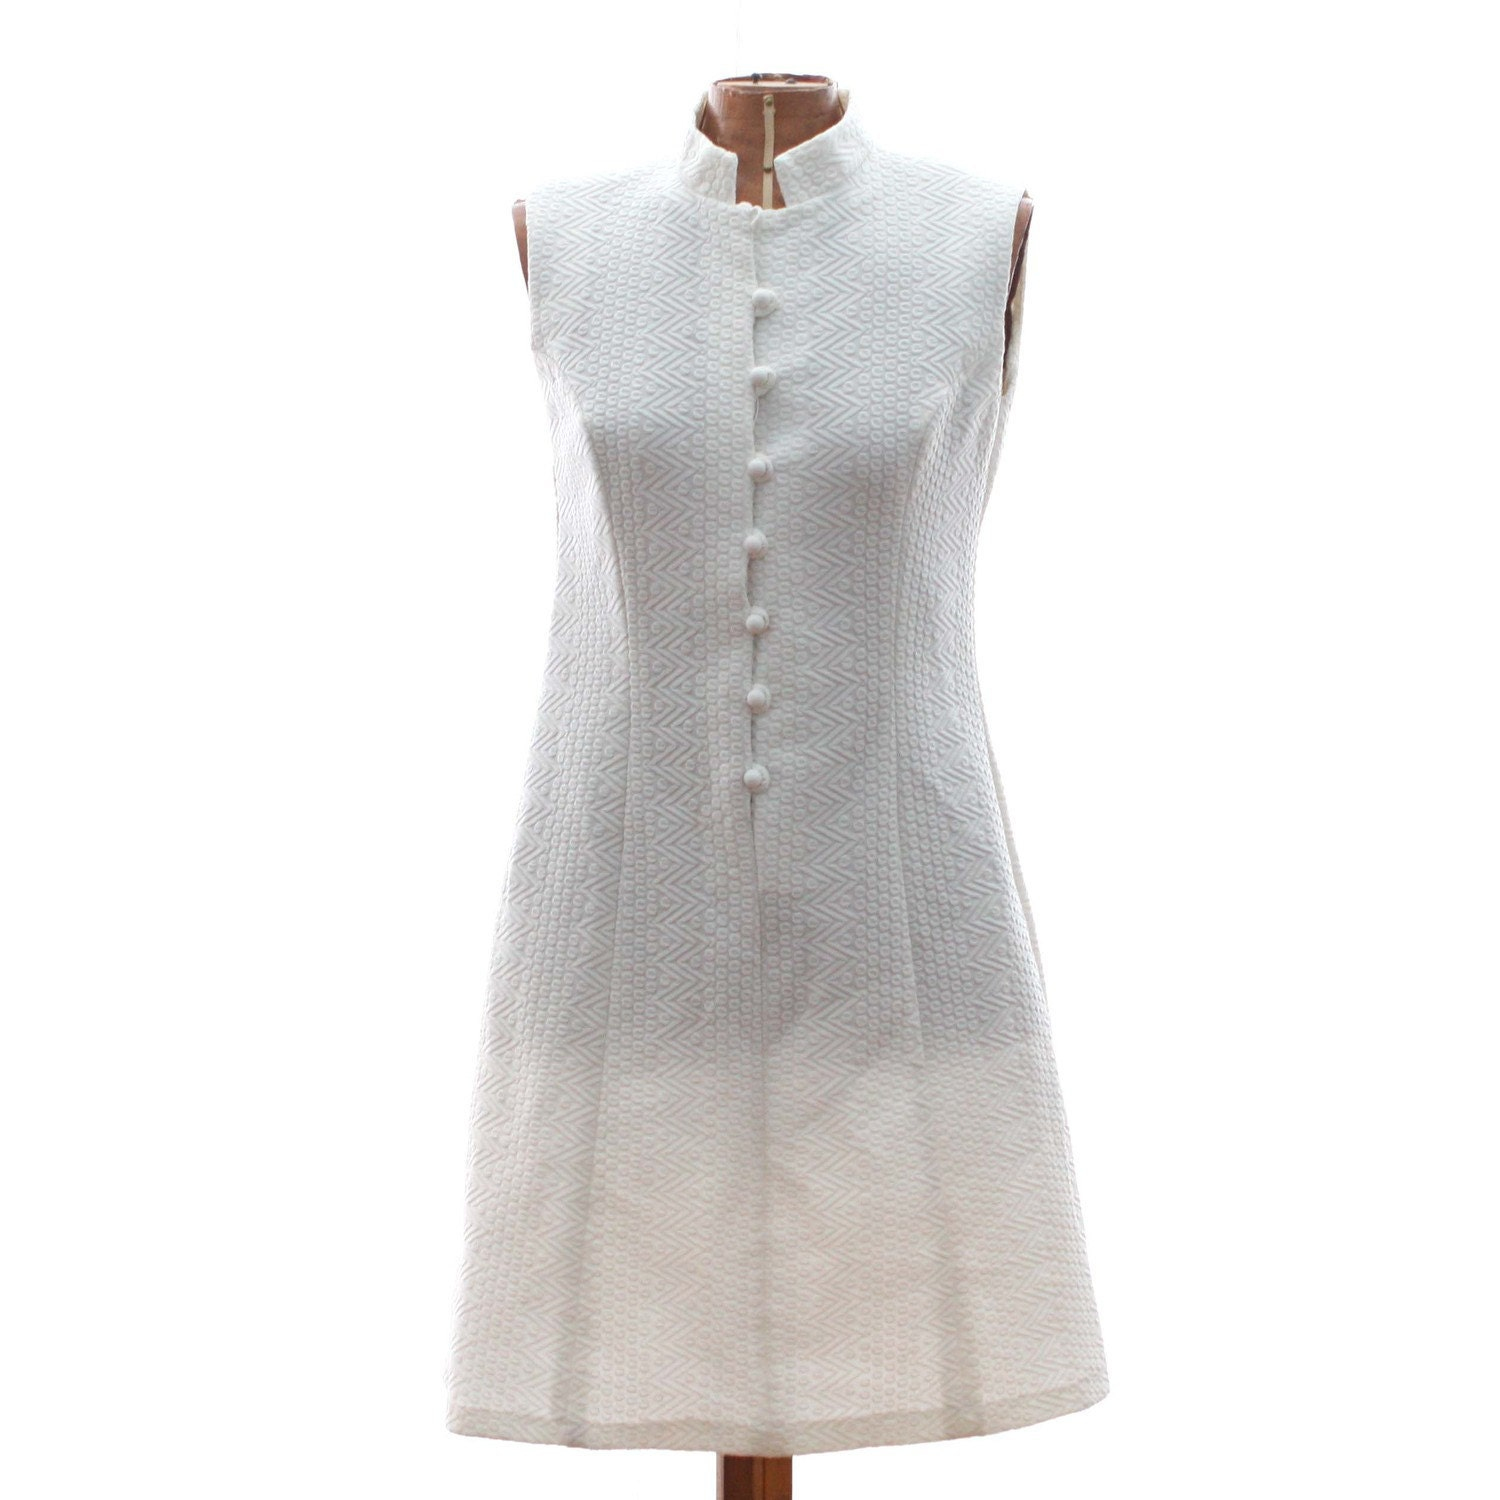 Mod White Sleeveless Vintage Tennis Dress with Mock Neck